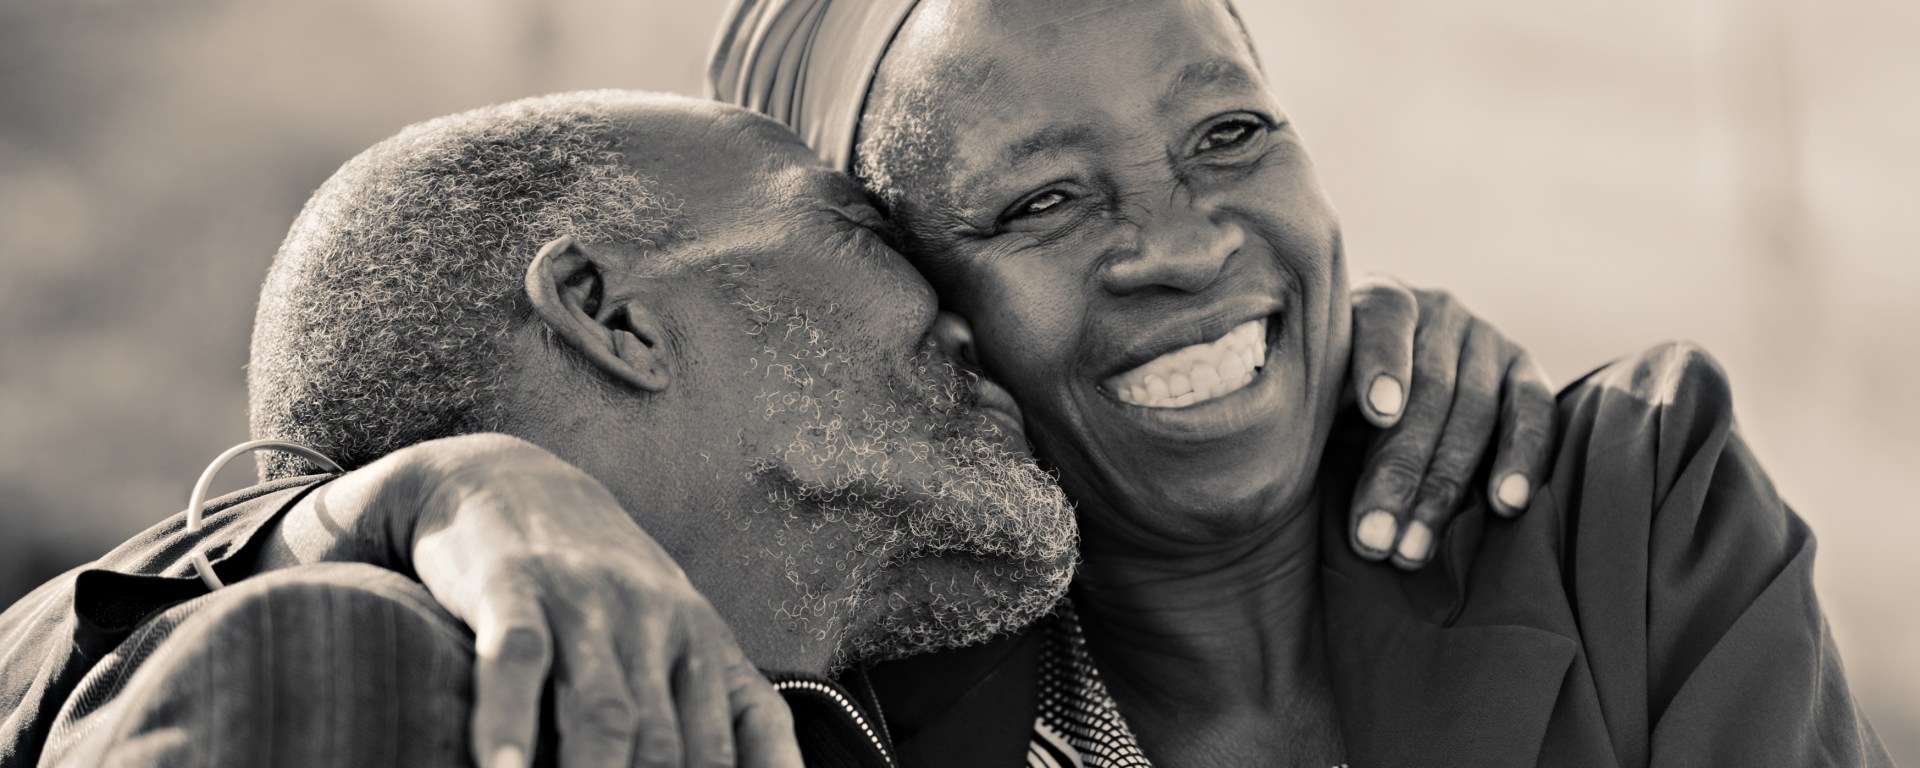 Smiling couple.